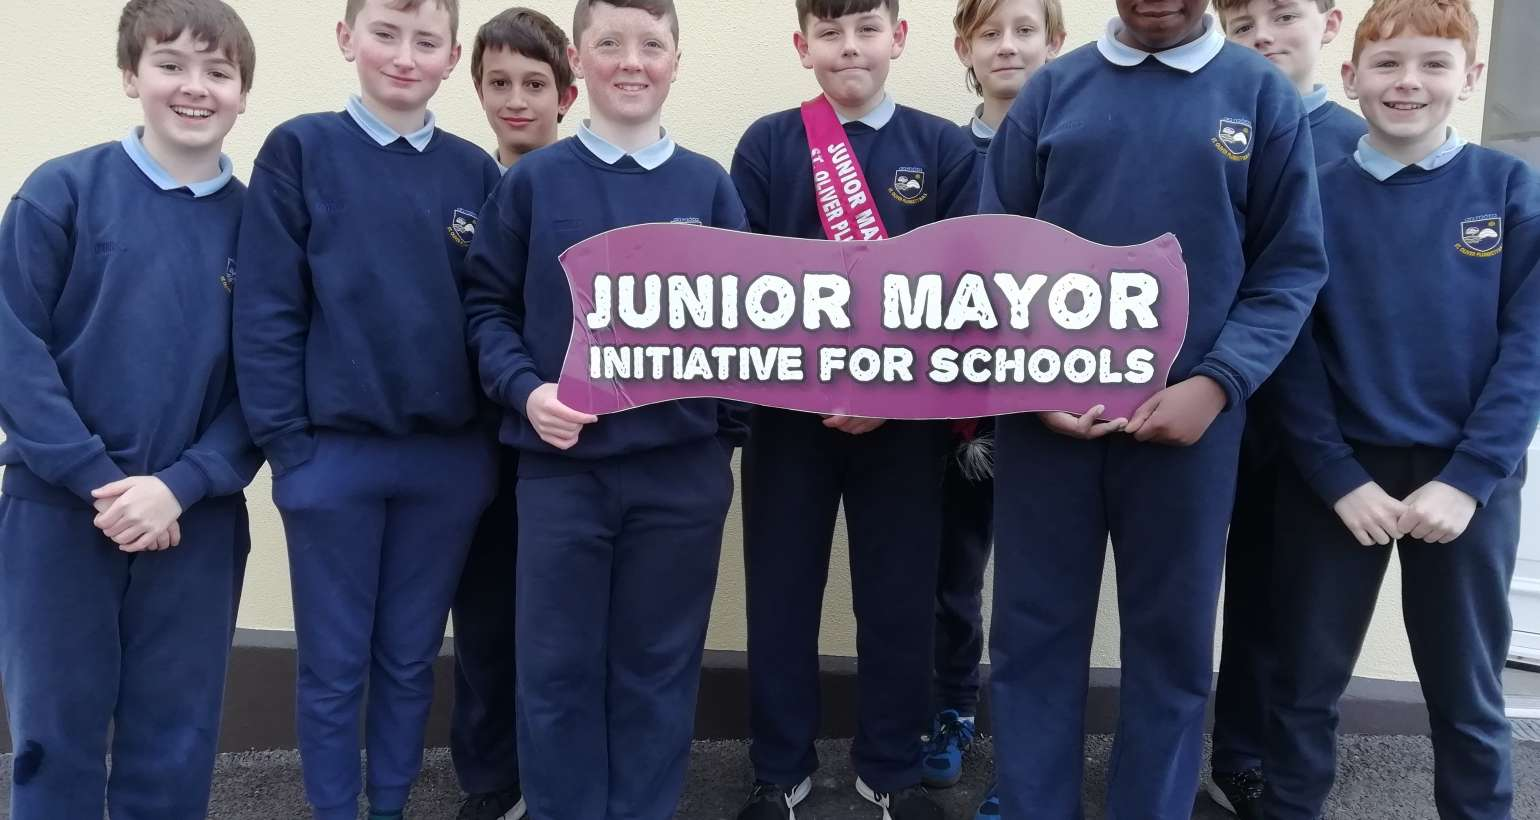 Junior Mayor Programme